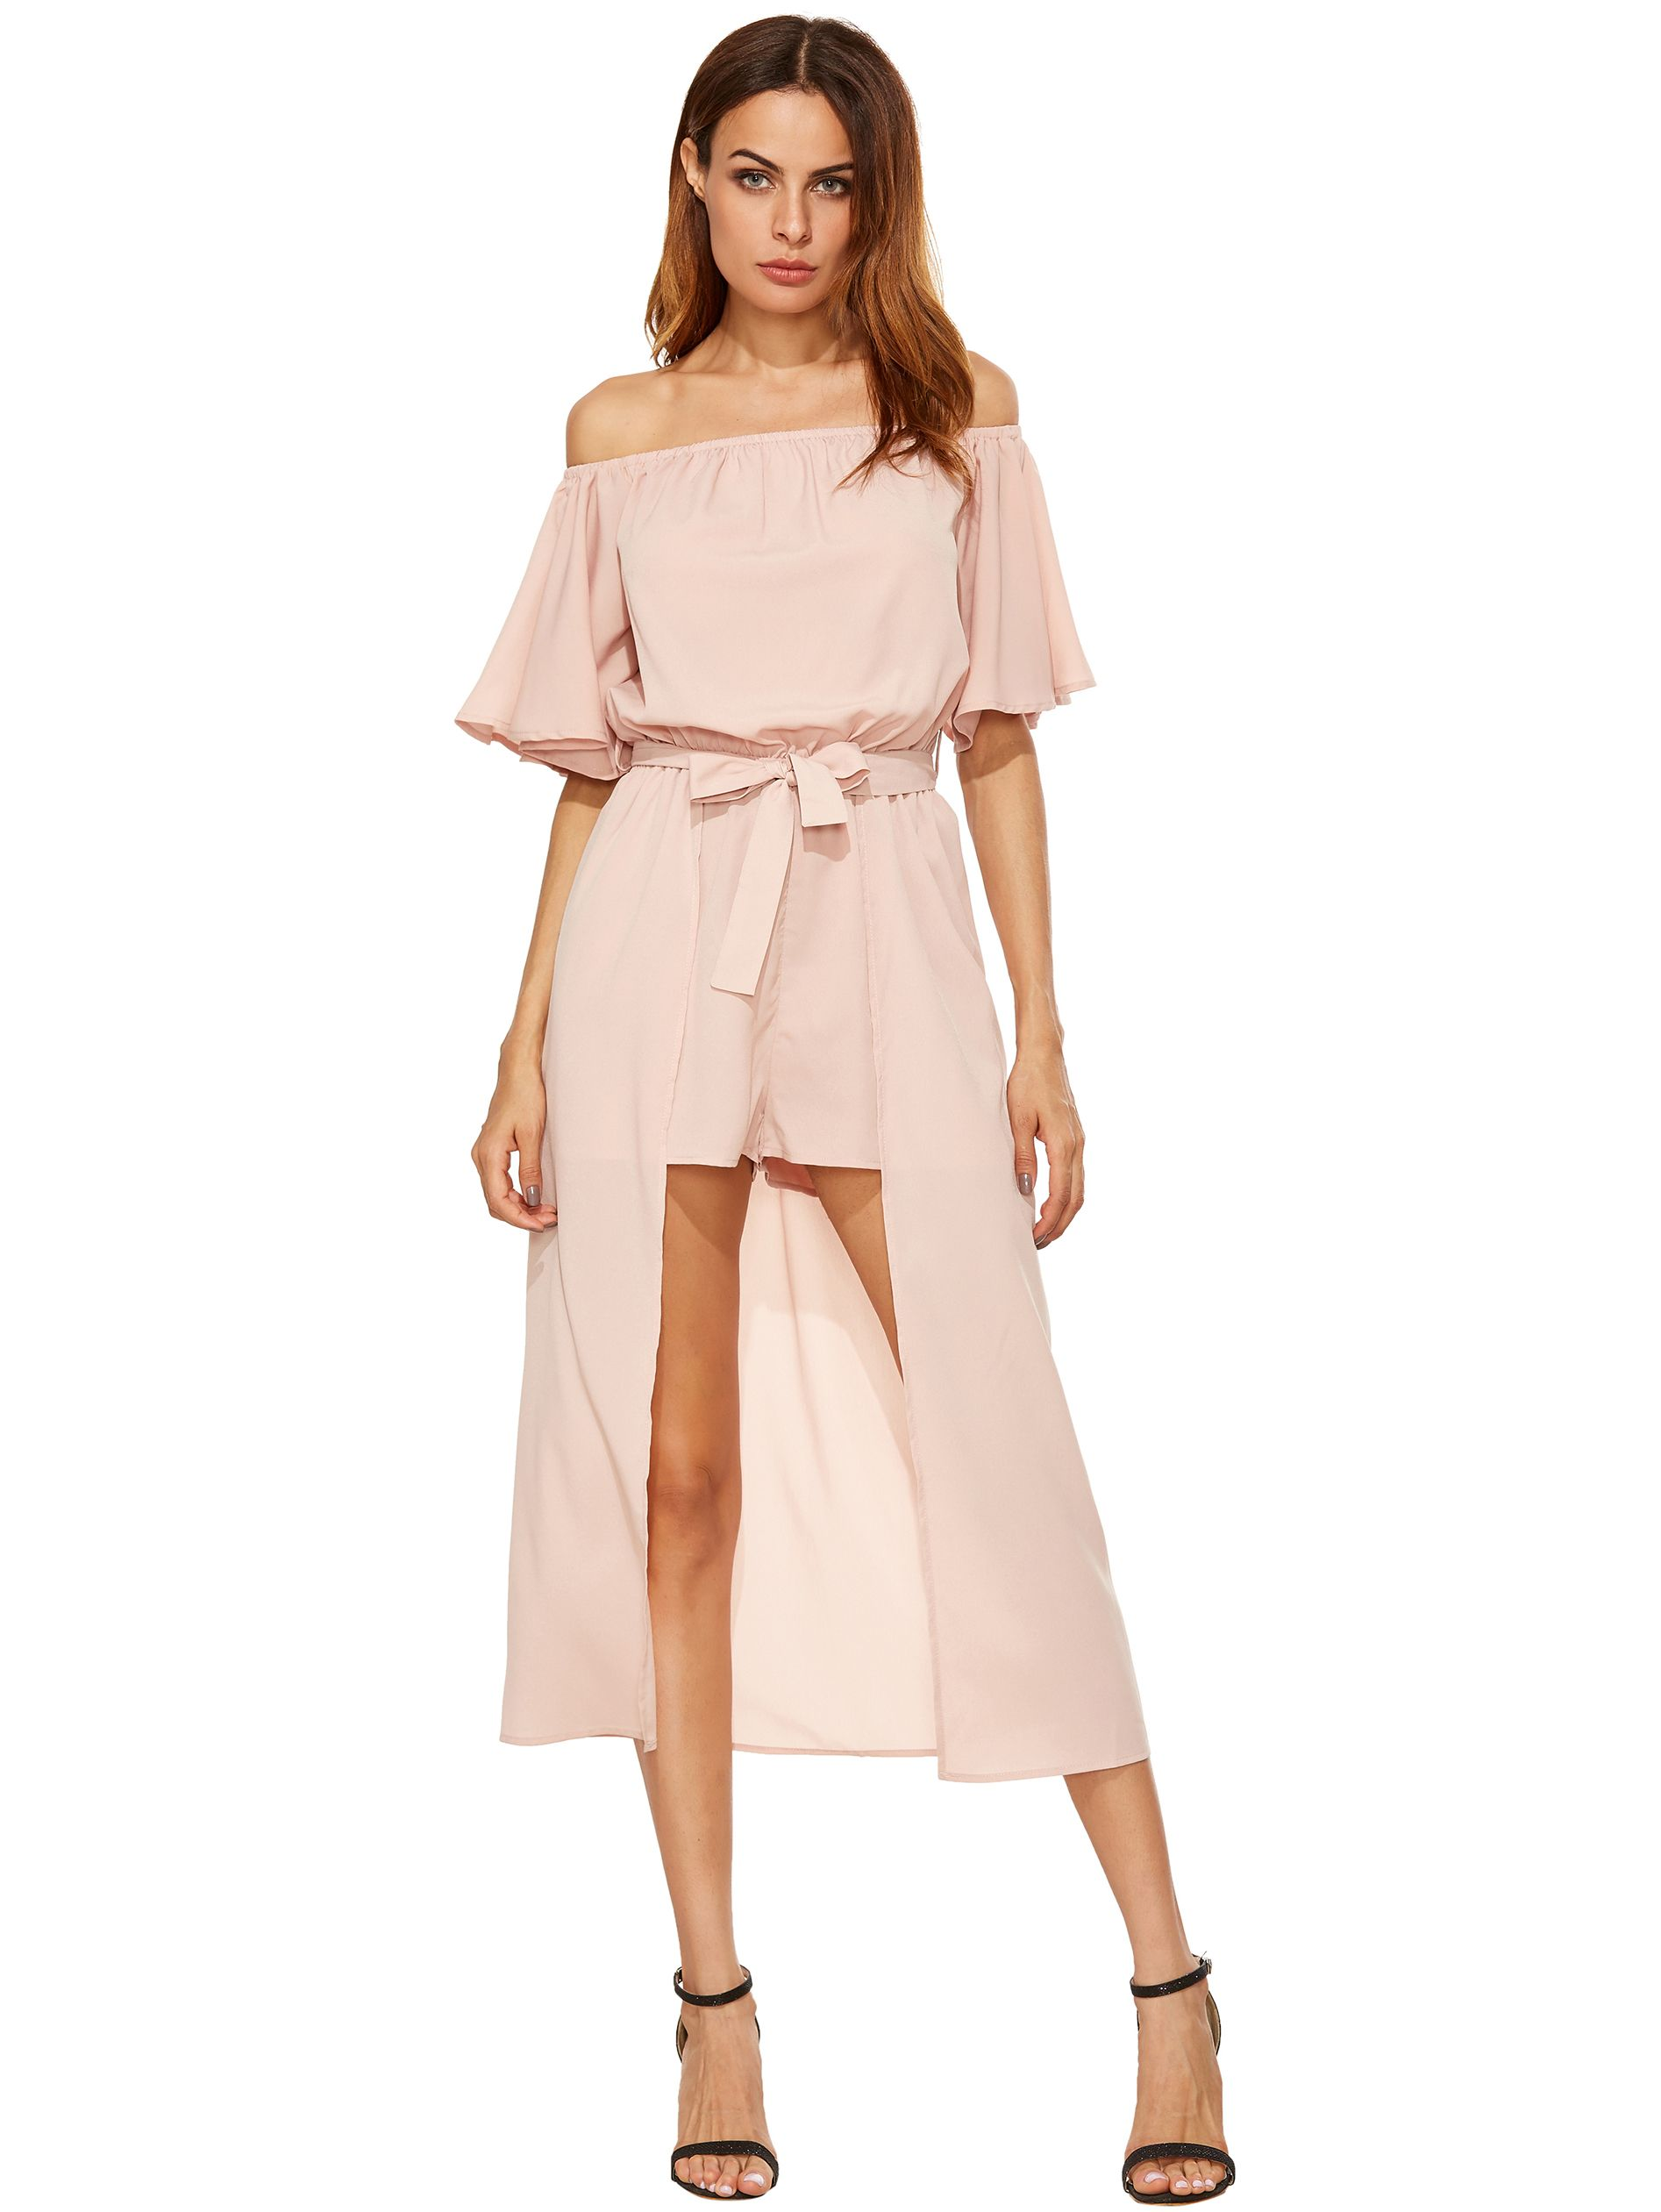 44e1d80562ad2 Off The Shoulder Jumpsuit With Skirt Overlay | Clothes in 2019 ...